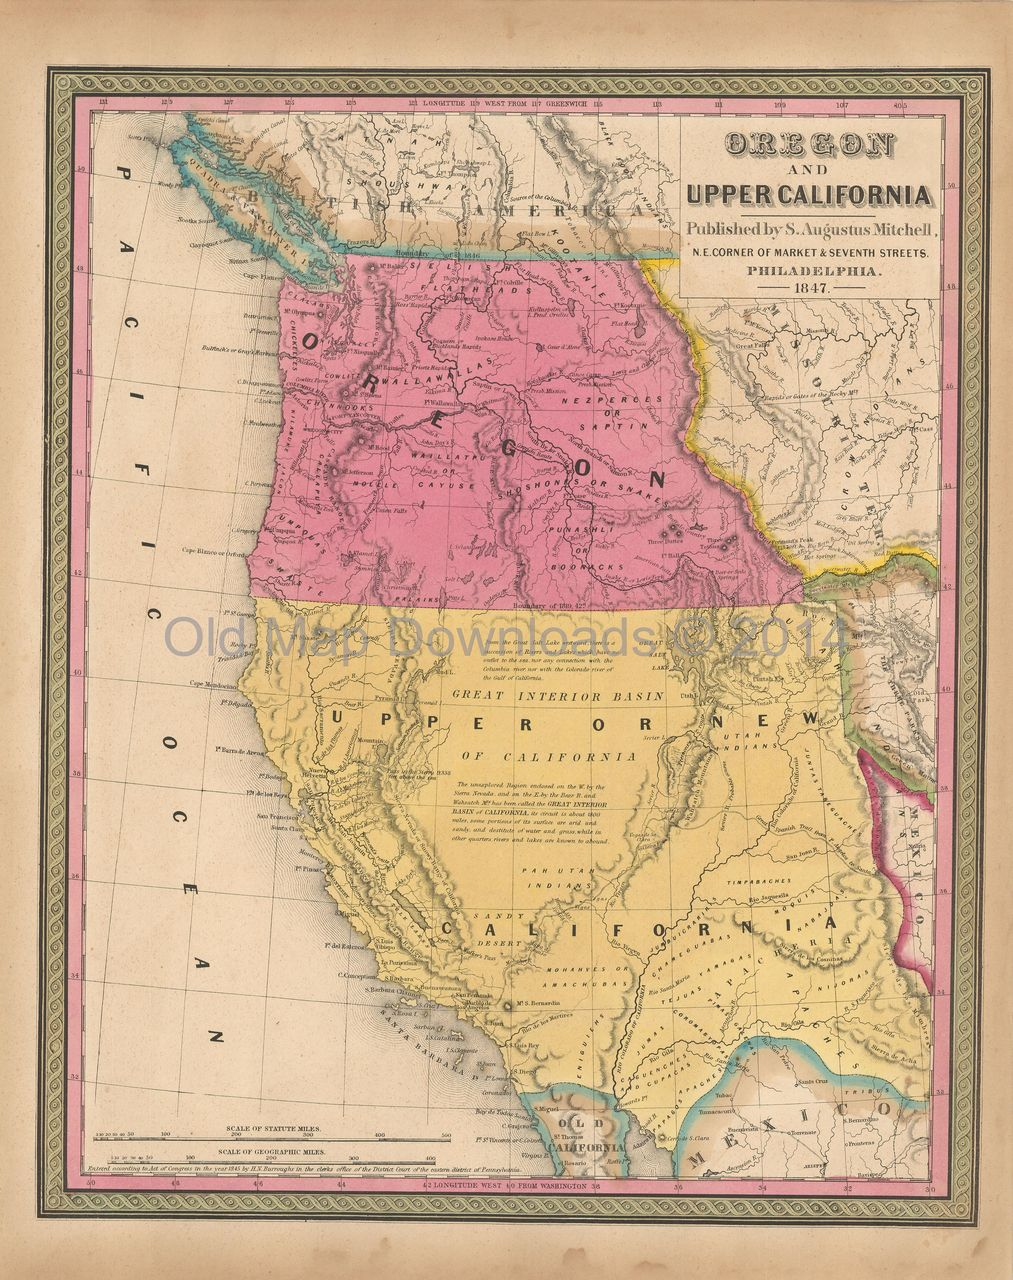 Oregon Upper California Old Map Mitchell 1847 Digital Image Scan